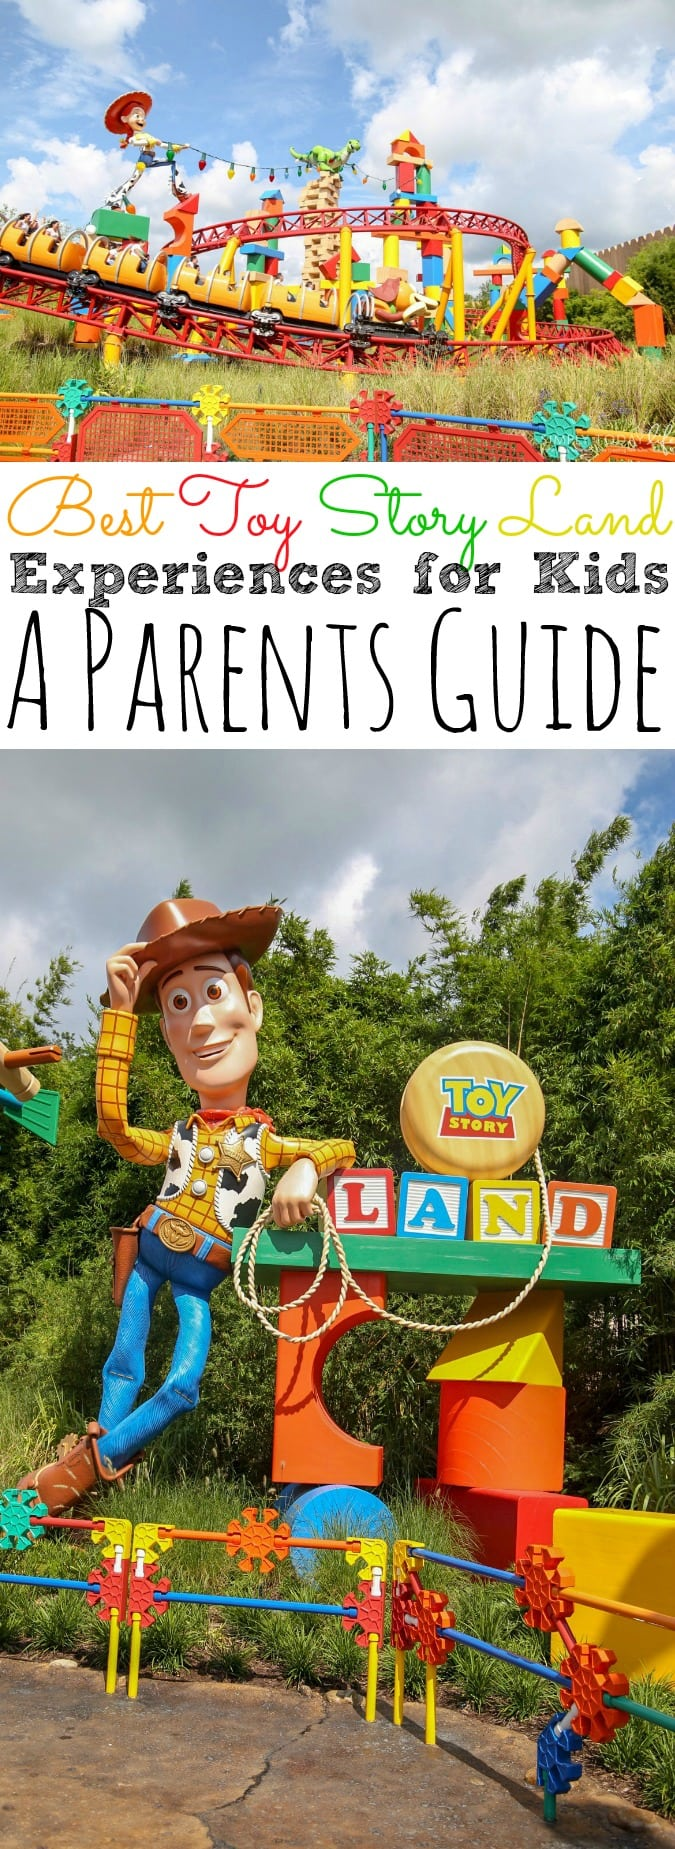 Visiting Florida and Disney soon? Check out my Best Toy Story Land Experiences For Kids and Families! A Parents Guide to the Rides, Photos Opportunities, and Character Meet and Greets! - simplytodaylife.com #ToyStoryLand #HollywoodStudios #FamilyTravels #DisneyParks